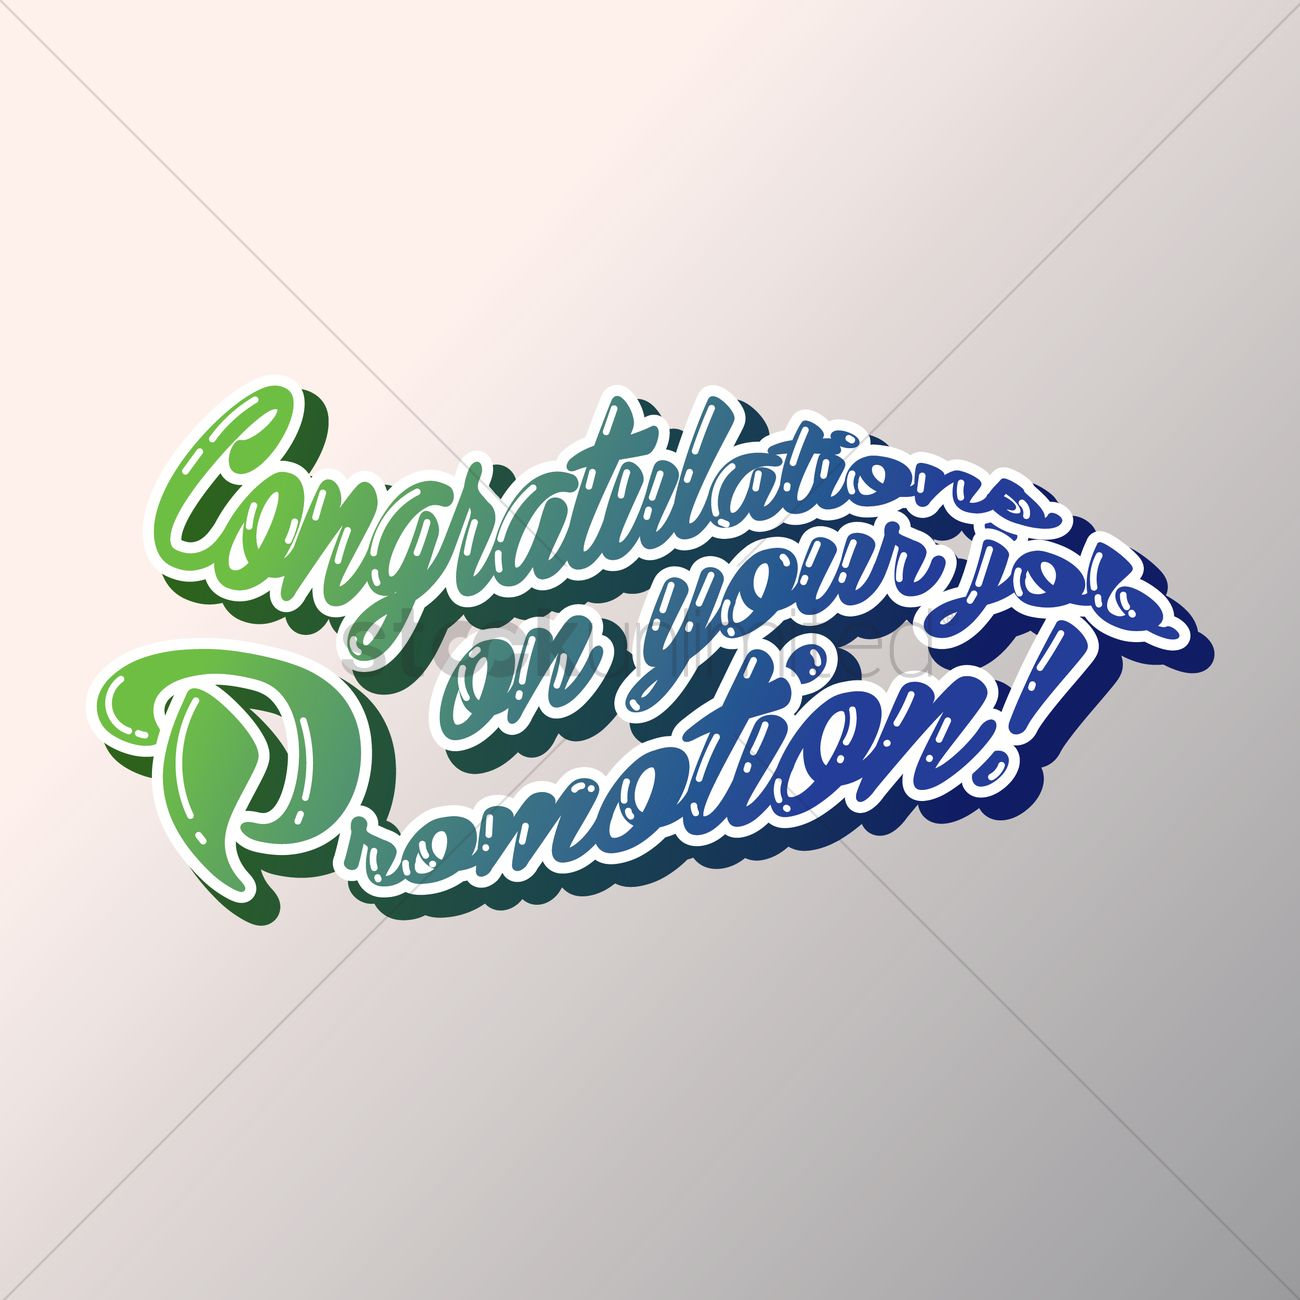 congratulations on your promotion vector image  congratulations on your promotion vector graphic